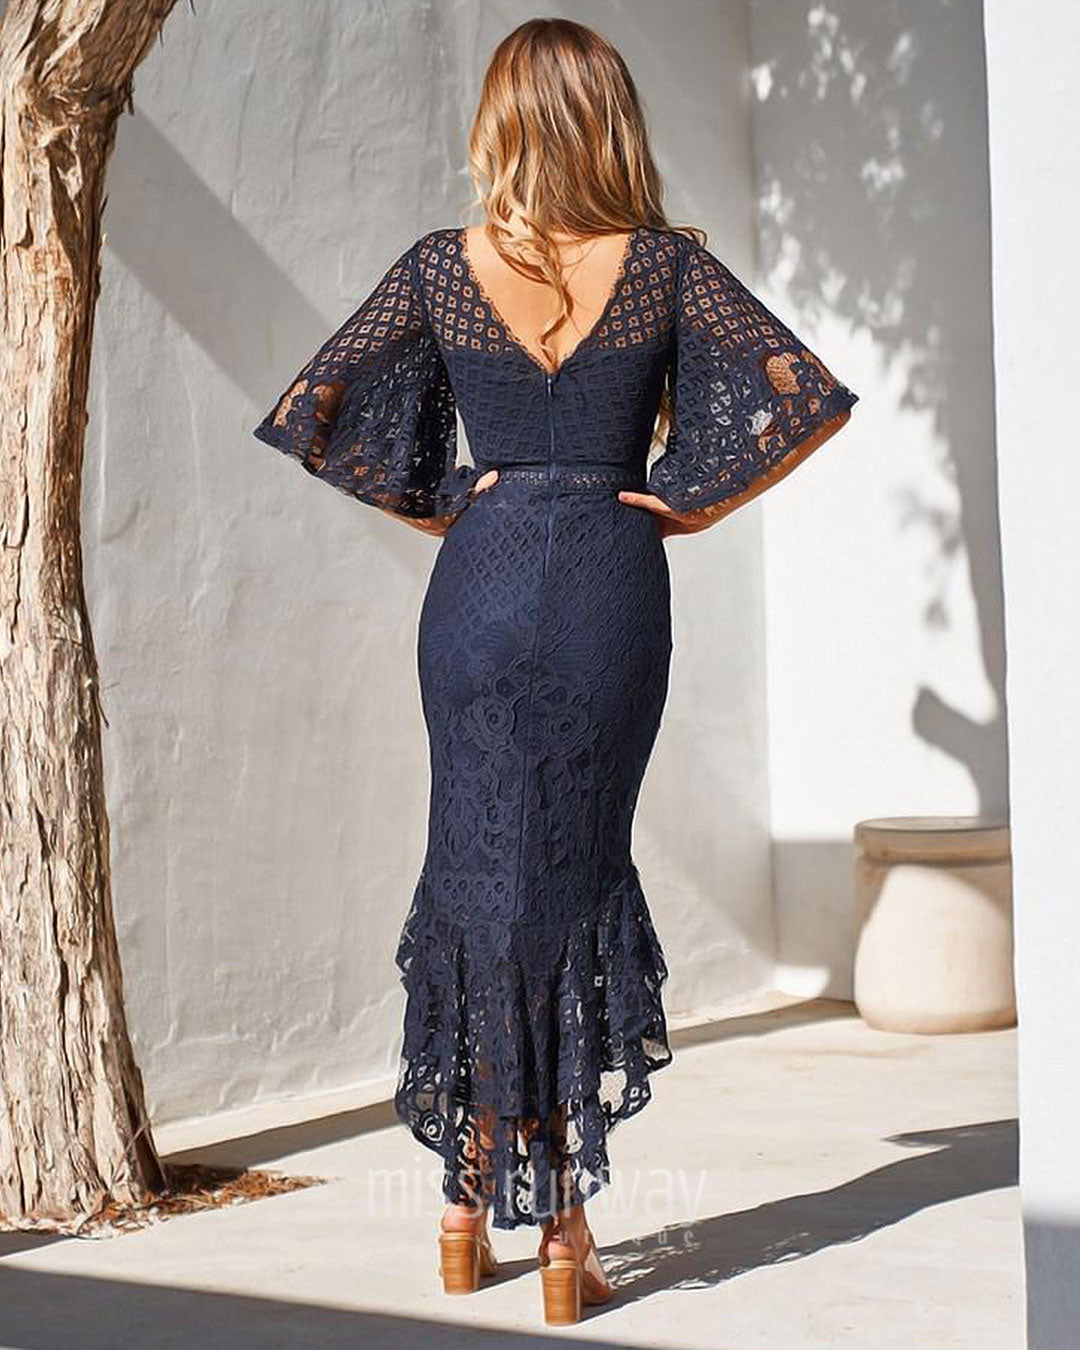 Reyna Lace Midi Dress - Navy [PRE-ORDER]